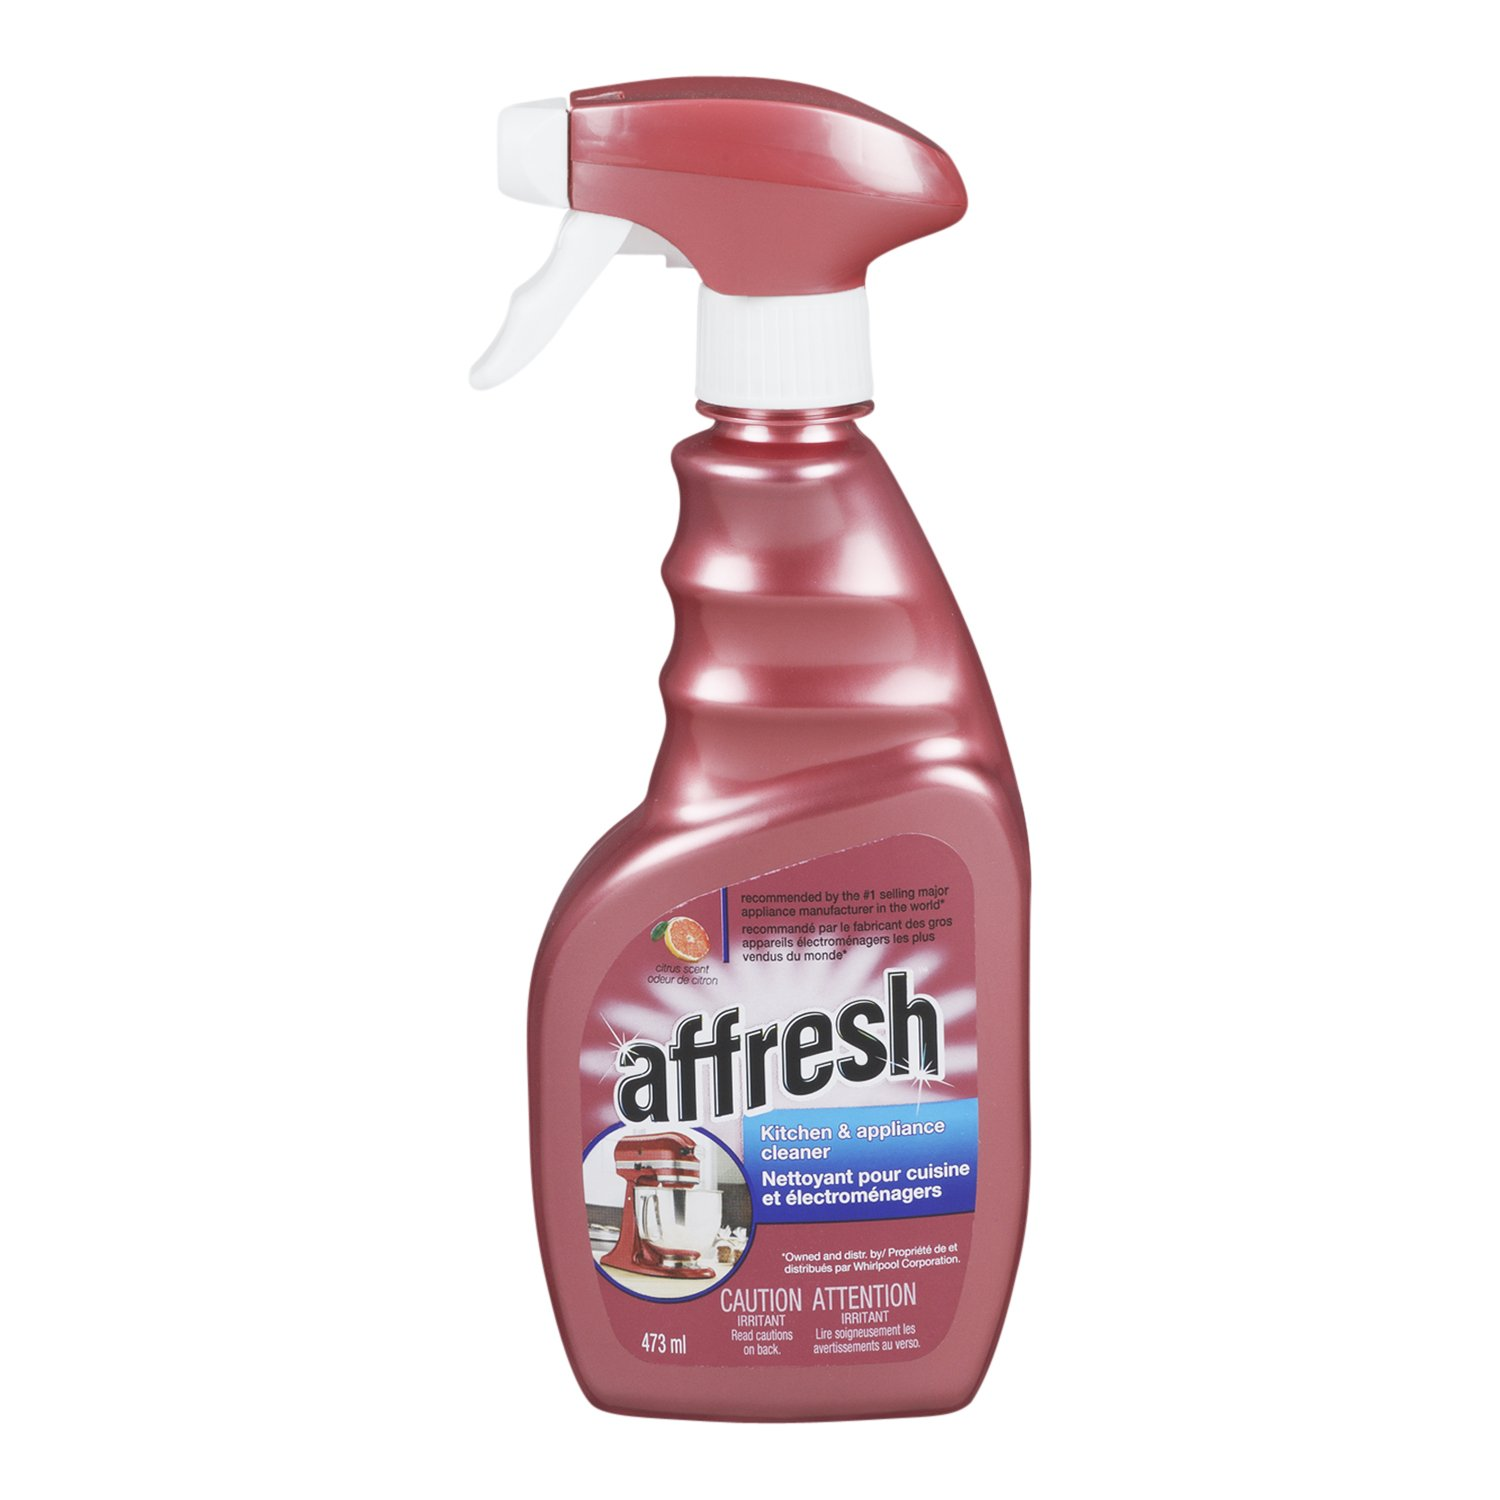 Whirlpool Affresh Kitchen and Appliance Cleaner, 16-Ounce (Red ...